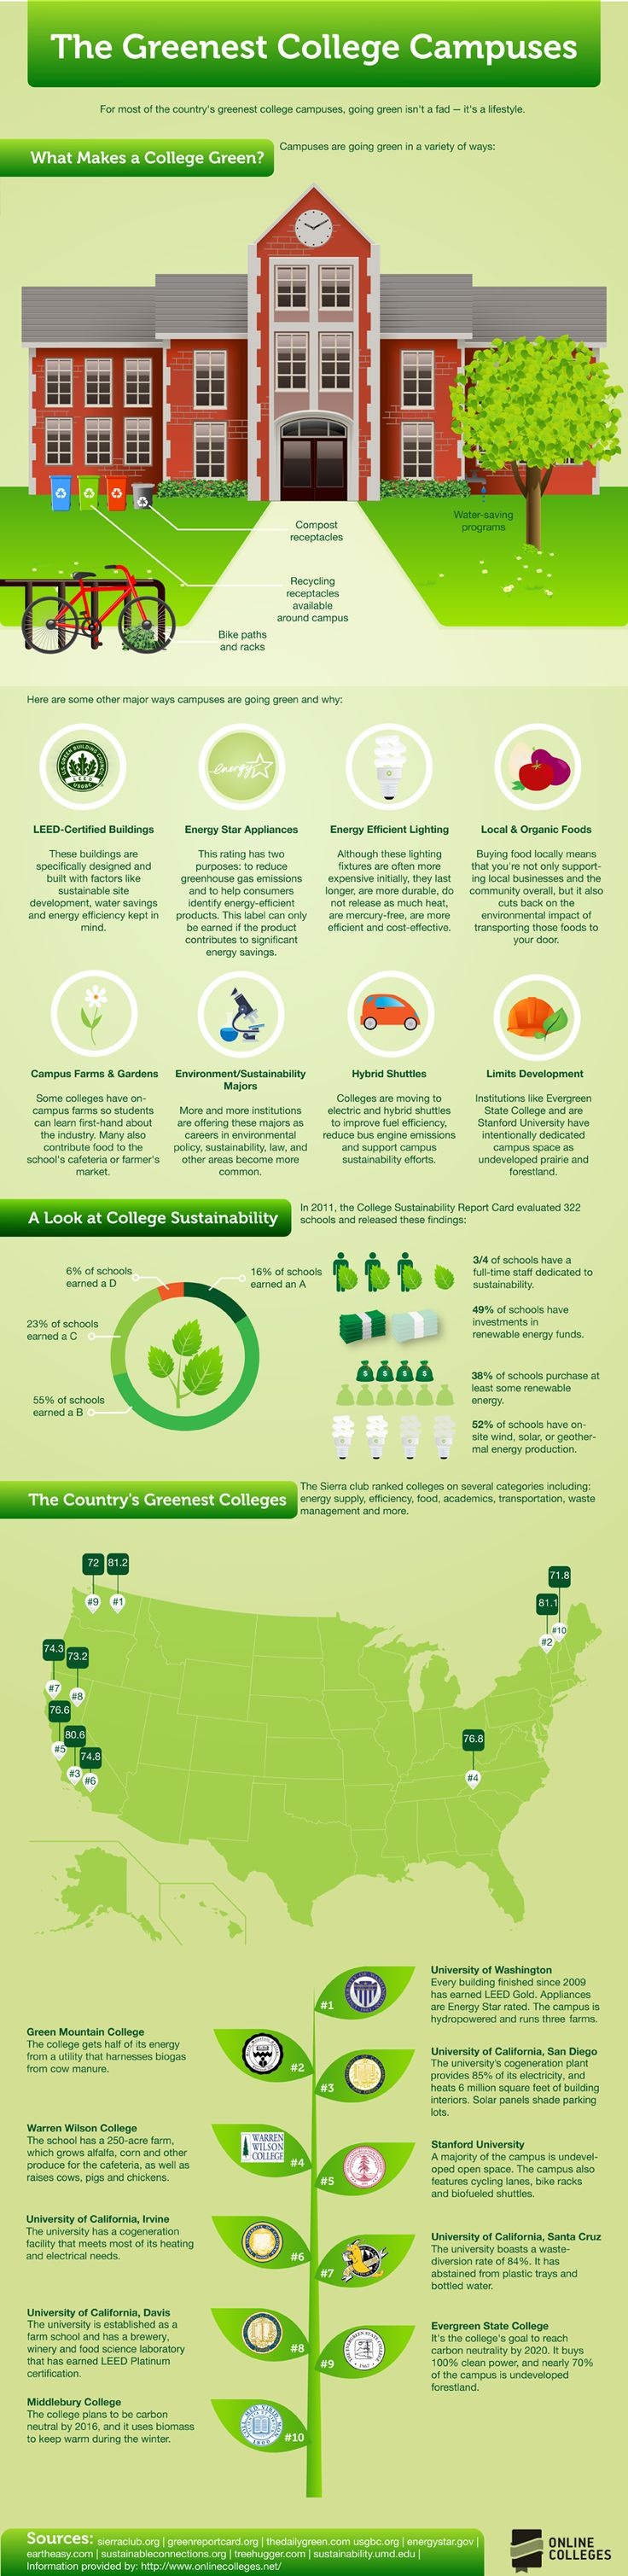 How many dry college campuses are there in the United States?